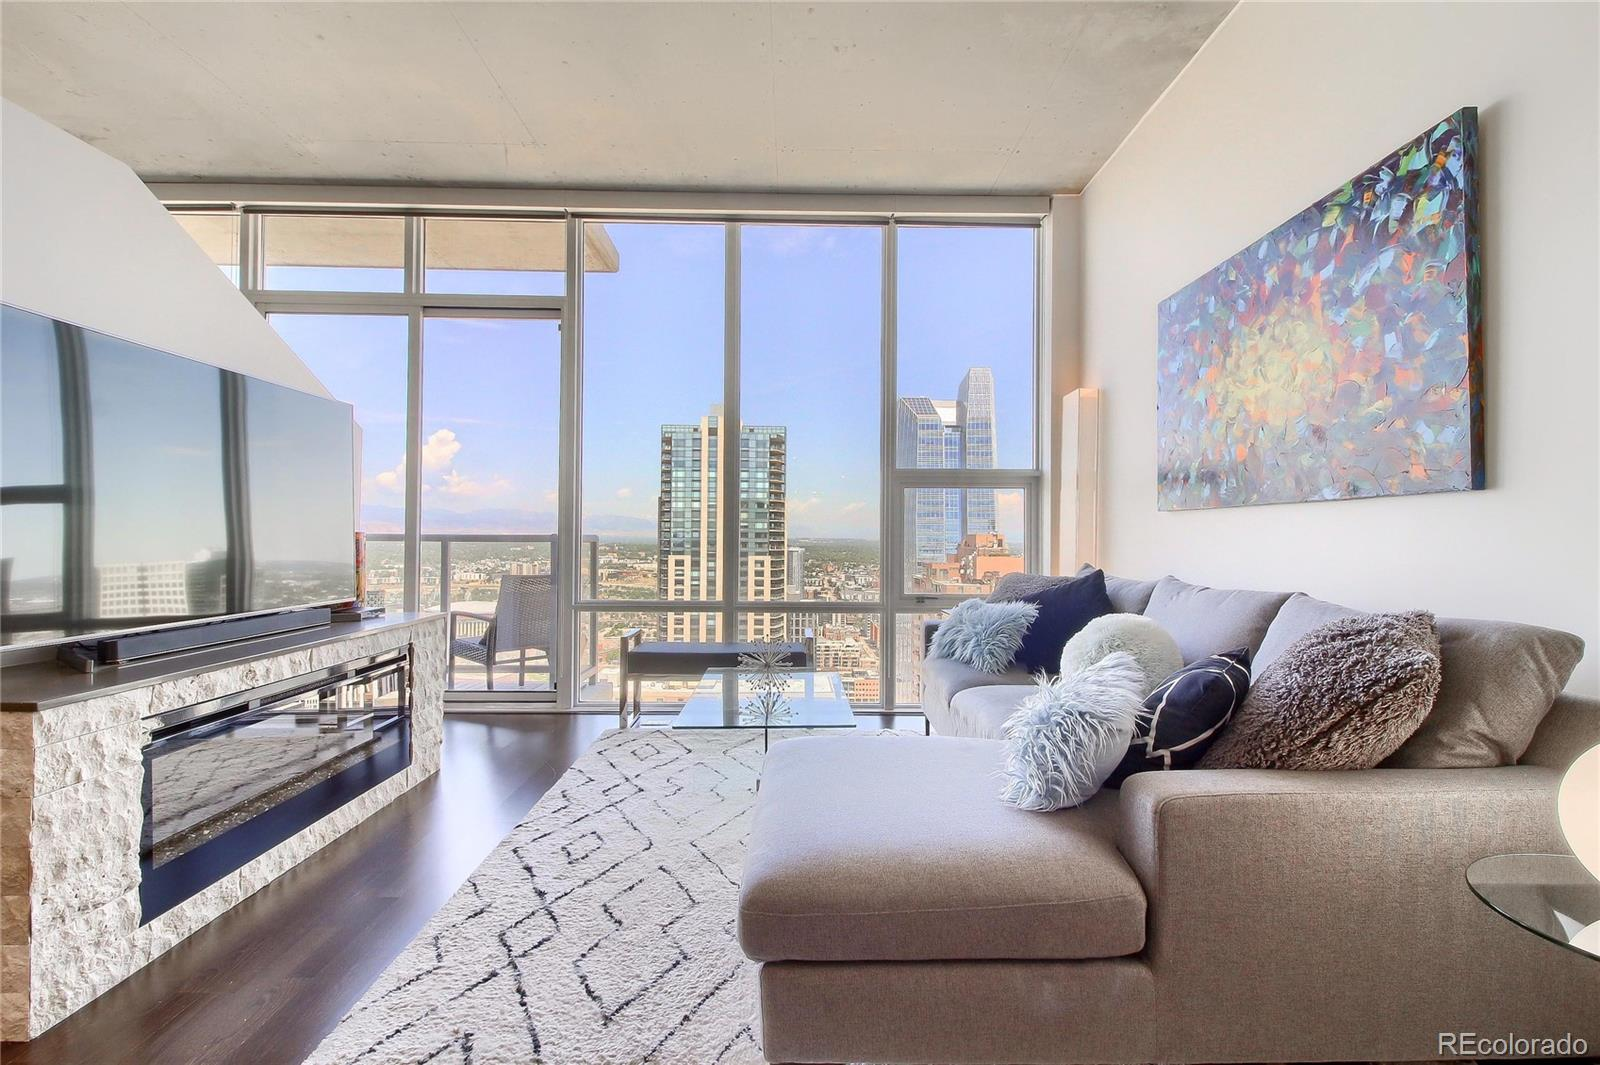 You have arrived! Optimum one and den soaring above Denver's Skyline. Only a select few condo owners in Denver can boast these vast unobstructed mountain and city views.  Large 900 Square foot, modern, open concept one bedroom with additional Den/Flex Space 39 Glorious floors High. When entering, you are immediately drawn to the Wall of Glass, creating a picture-perfect awe-inspiring mountain and cityscape. Rich hardwood floors throughout the main living area of the home. Open concept kitchen/living room and dining leading out to your private balcony perfect for entertaining. Tasteful modern updates like brick wall overlays and fireplaces in both the living room and the master bedroom. The flex space used to be an additional guest bedroom with a bed and a desk. The current owner decided to make it an office only, but the room could easily be used as both office space and guest sleeping quarters.Denver's Premier Address is LEED Certified. Located in the heart of the theatre district next to iconic hotels and restaurants, Performing Arts, Denver Convention Center, the Lightrail, and Much Much More! Enjoy unprecedented amenities spanning over 40,000 square feet!  24/7 concierge, Large Movie Theatre, Business Center. The HUGE Community room takes up nearly the entire floor, including a billiards table, massive viewing screen, wet bar, multiple sitting areas with free WiFi, outdoor grills, hot tubs, and wading pools along with fire pits.  The SkyClub includes wine lockers, billiards table, large flat-screen TV, multiple lounging areas, massive island with seating and food prep area, and private restrooms. Condo fees include nearly all of your utilities along with DirecTV Choice HD w/HBO&Cinemax, 1 Gigabit Internet! Monthly HOA fees fluctuate slightly as a portion is dependent on water, electricity, and steam usage.